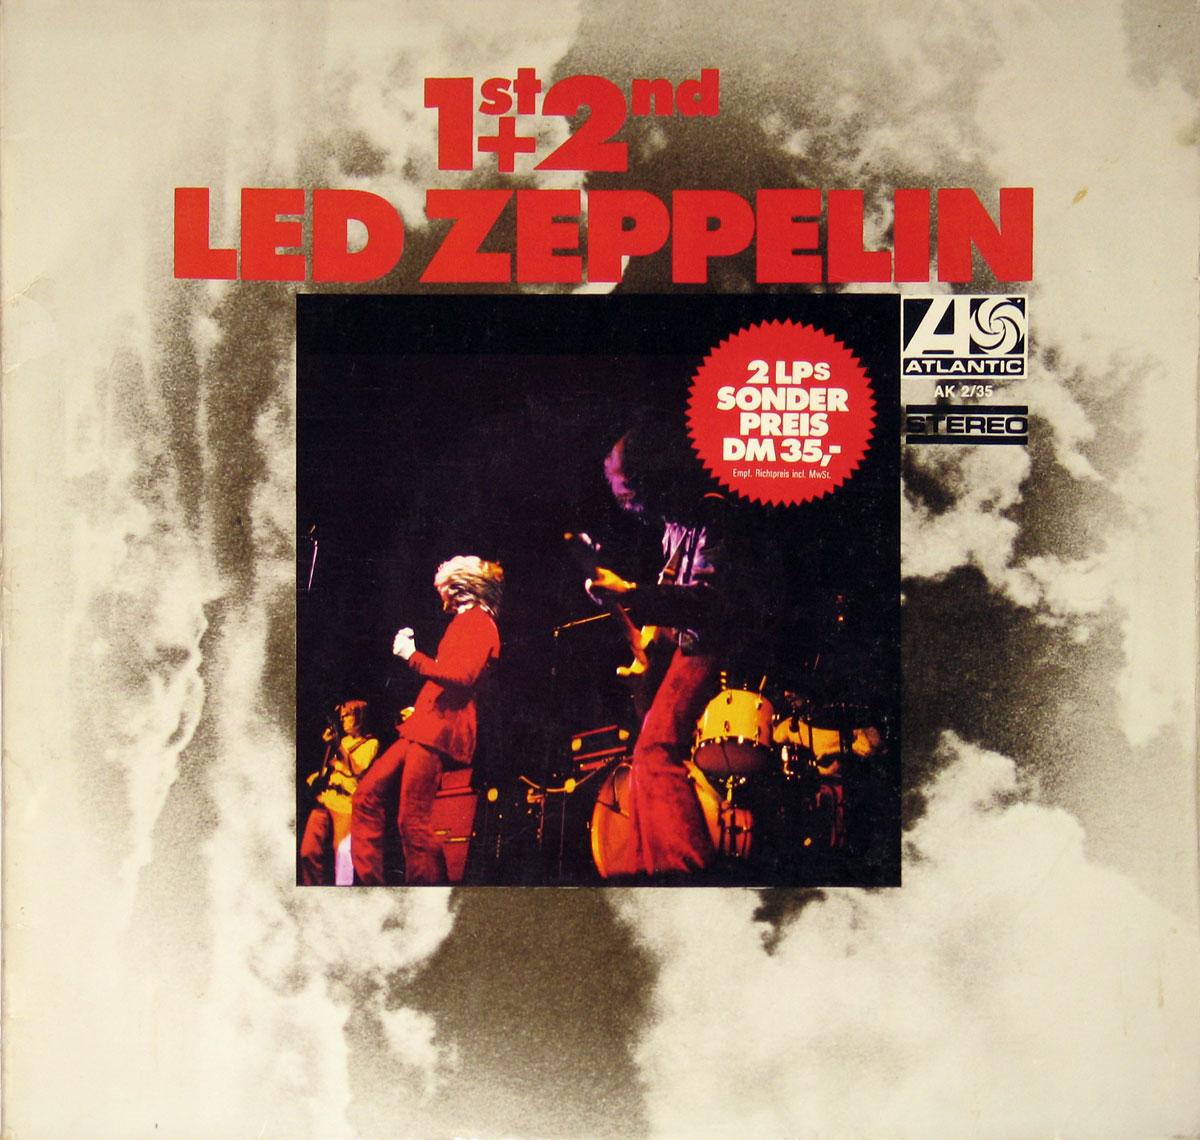 High Resolution Photo of Led Zeppelin 1st + 2nd 2LP Set